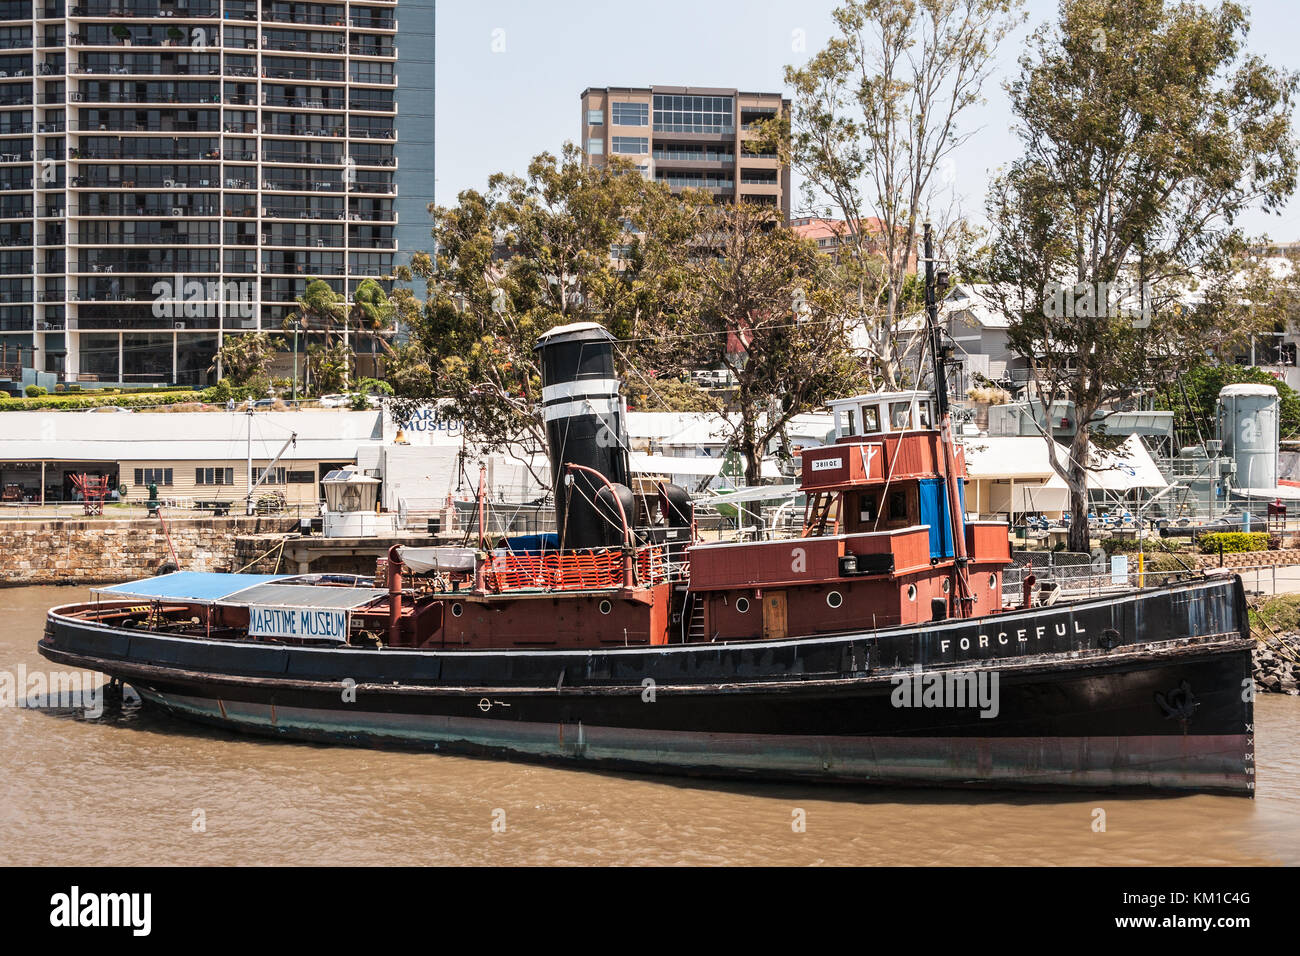 Brisbane, Australia - December 8, 2009: Old black and red small steam towboat named Forceful docked at Maritime - Stock Image